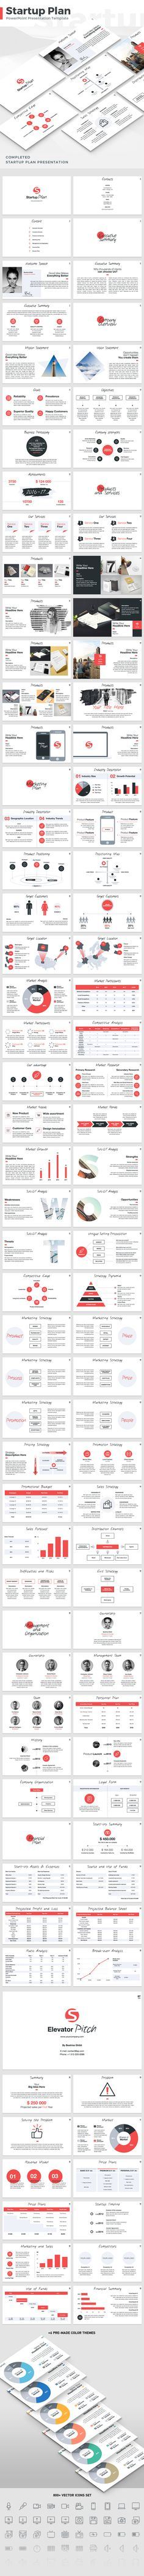 Startup Plan PowerPoint Template — Powerpoint PPTX #presentation template #business • Download ➝ https://graphicriver.net/item/startup-plan-powerpoint-template/18971690?ref=pxcr